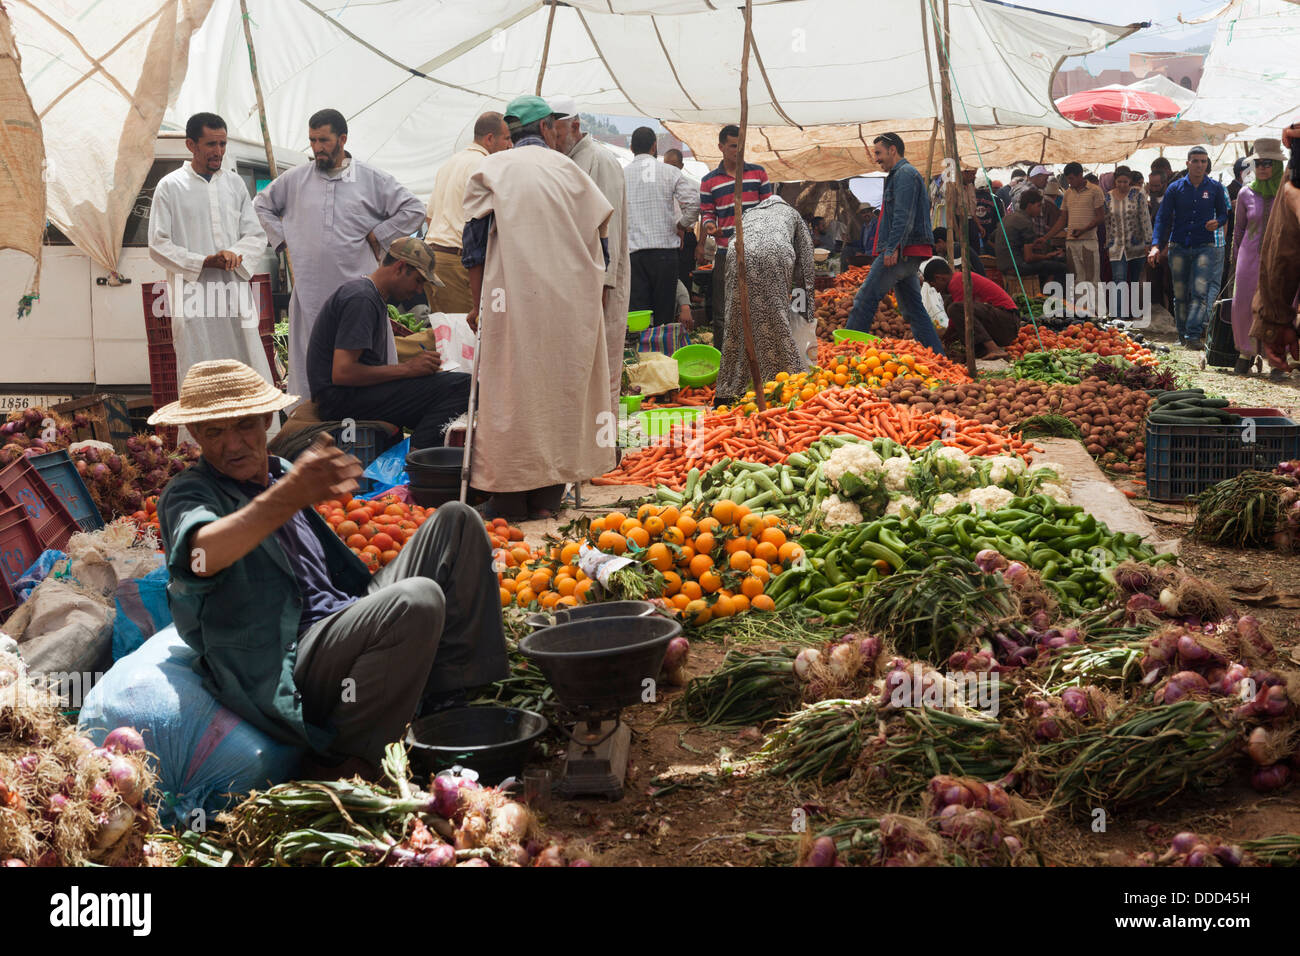 Monday Berber market in Tnine Ourika, Atlas Mountains, Morocco, North Africa - Stock Image